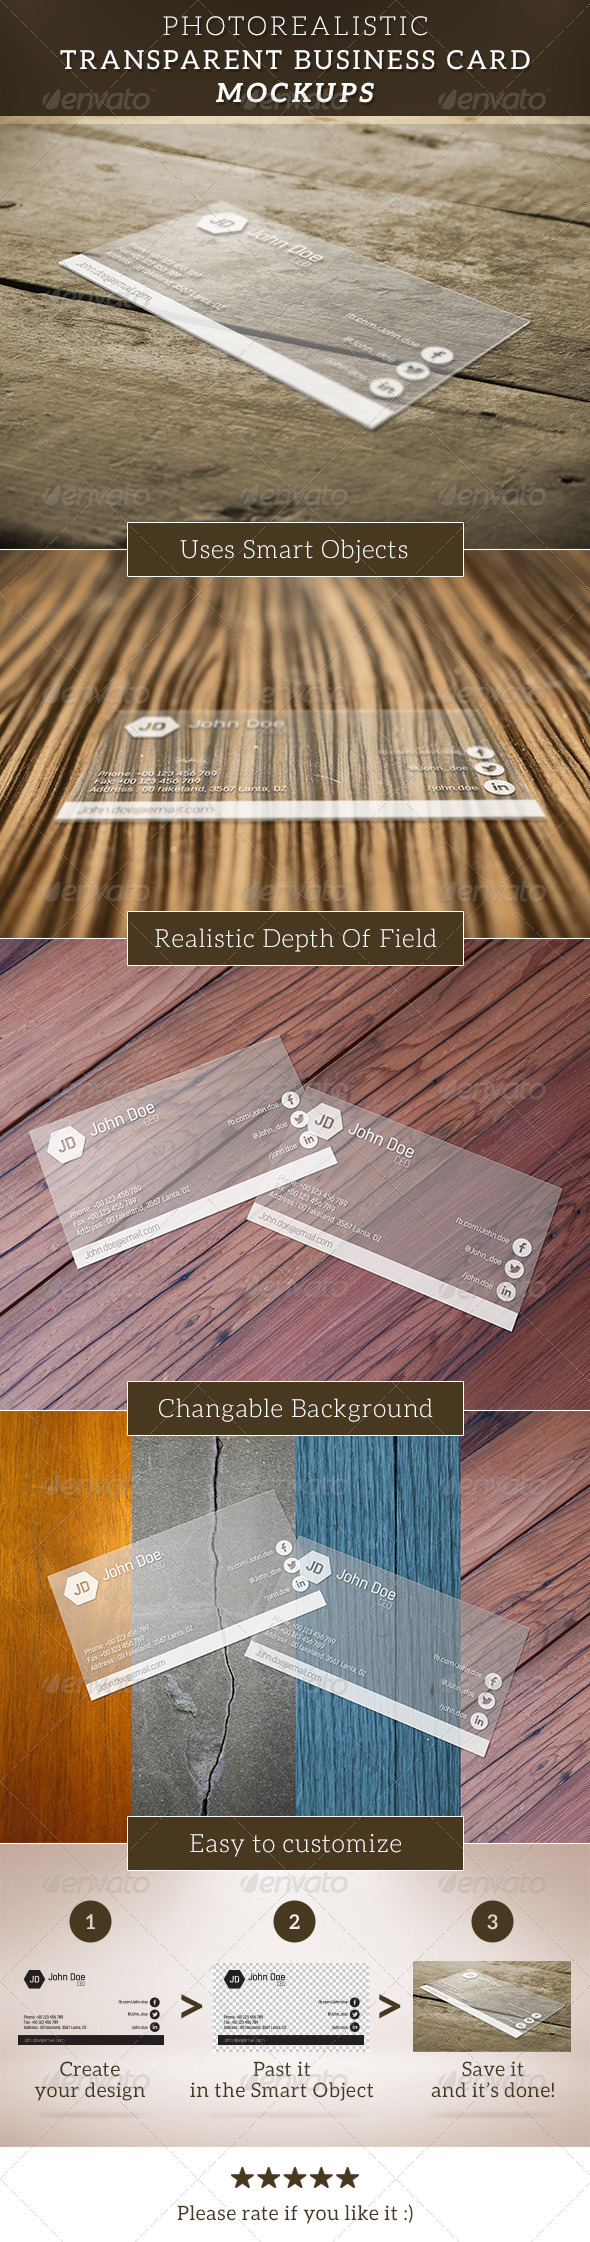 GraphicRiver Transparent Business Card Mockup 6713987